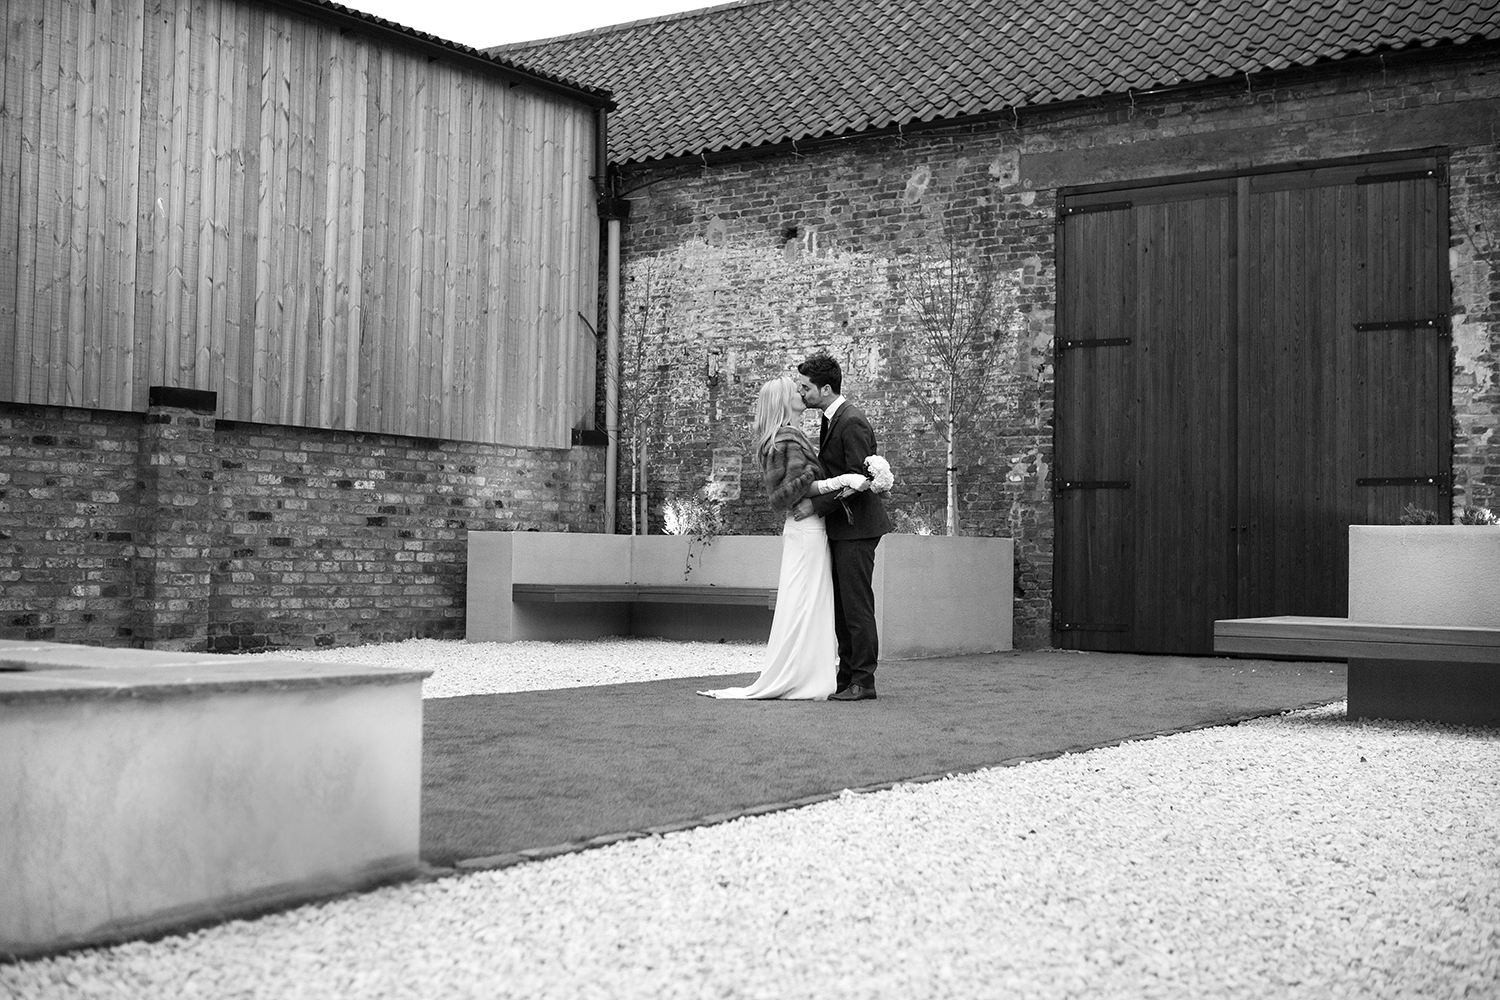 The Courtyard at The Normans wedding venue, North Yorkshire. Photo by www.adamlloydwilson.com